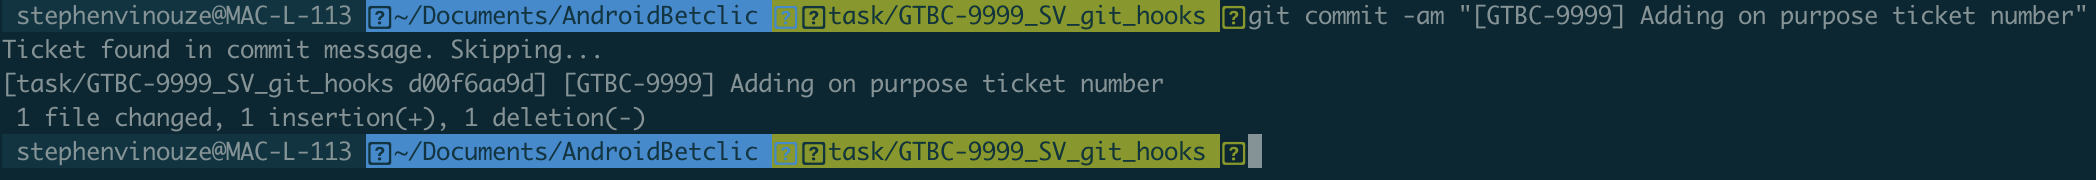 Purposefully adding [GTBC-9999] in so the commit message doesn't get duplicated